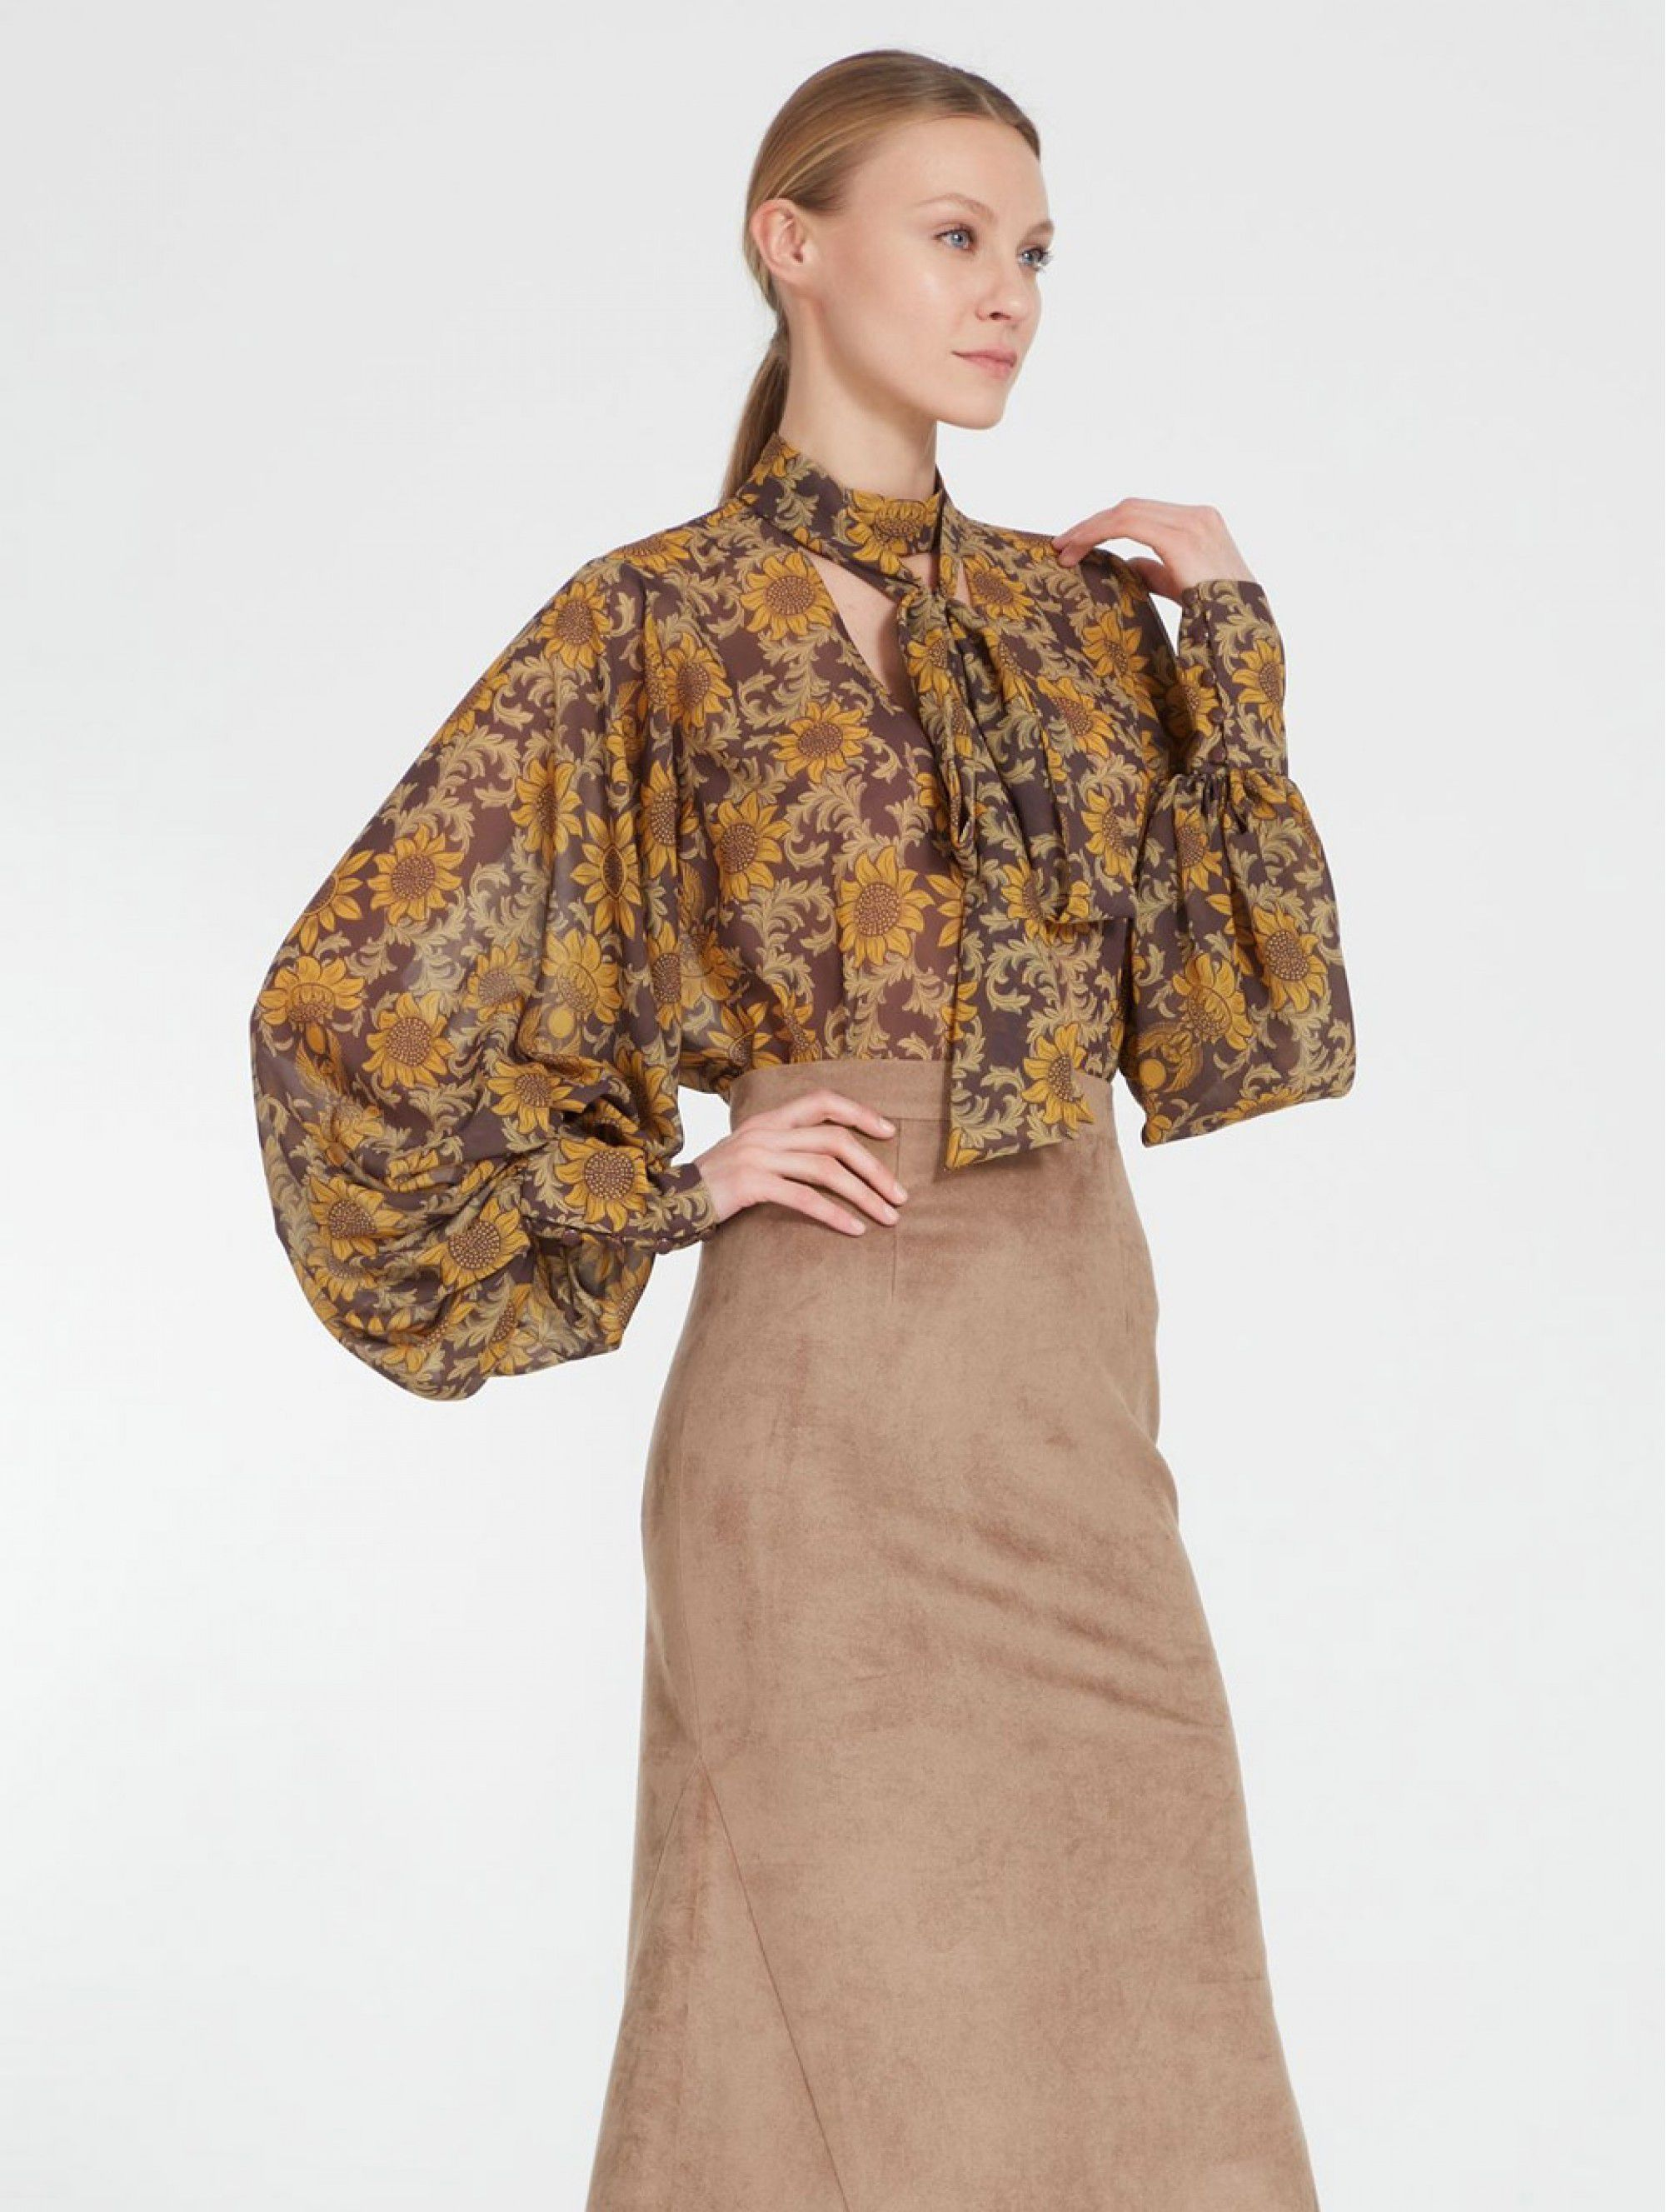 A La Russe Blouse with Sunflowers